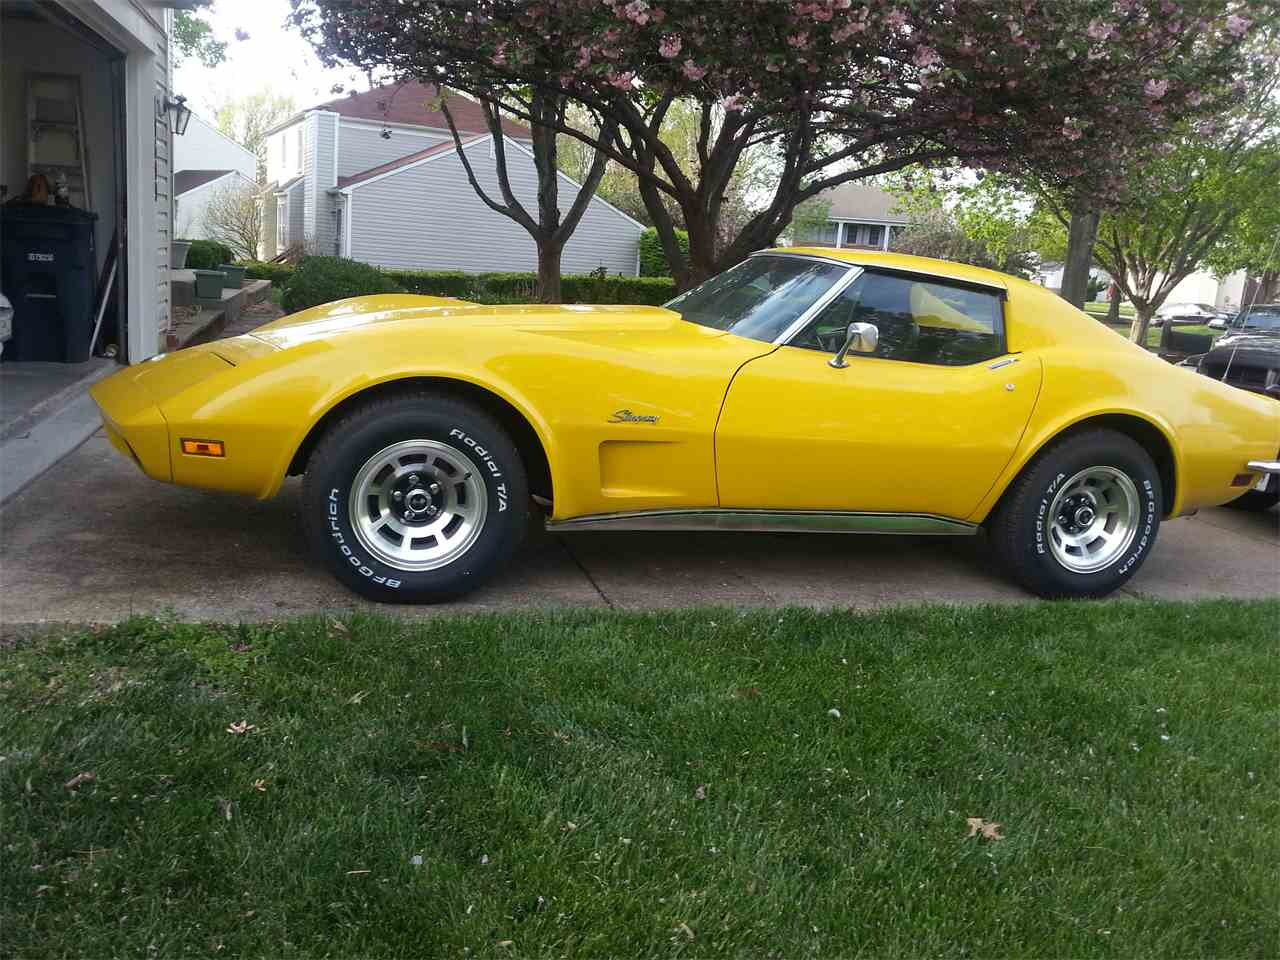 Picture of 1973 chevrolet corvette coupe exterior - Photo 1